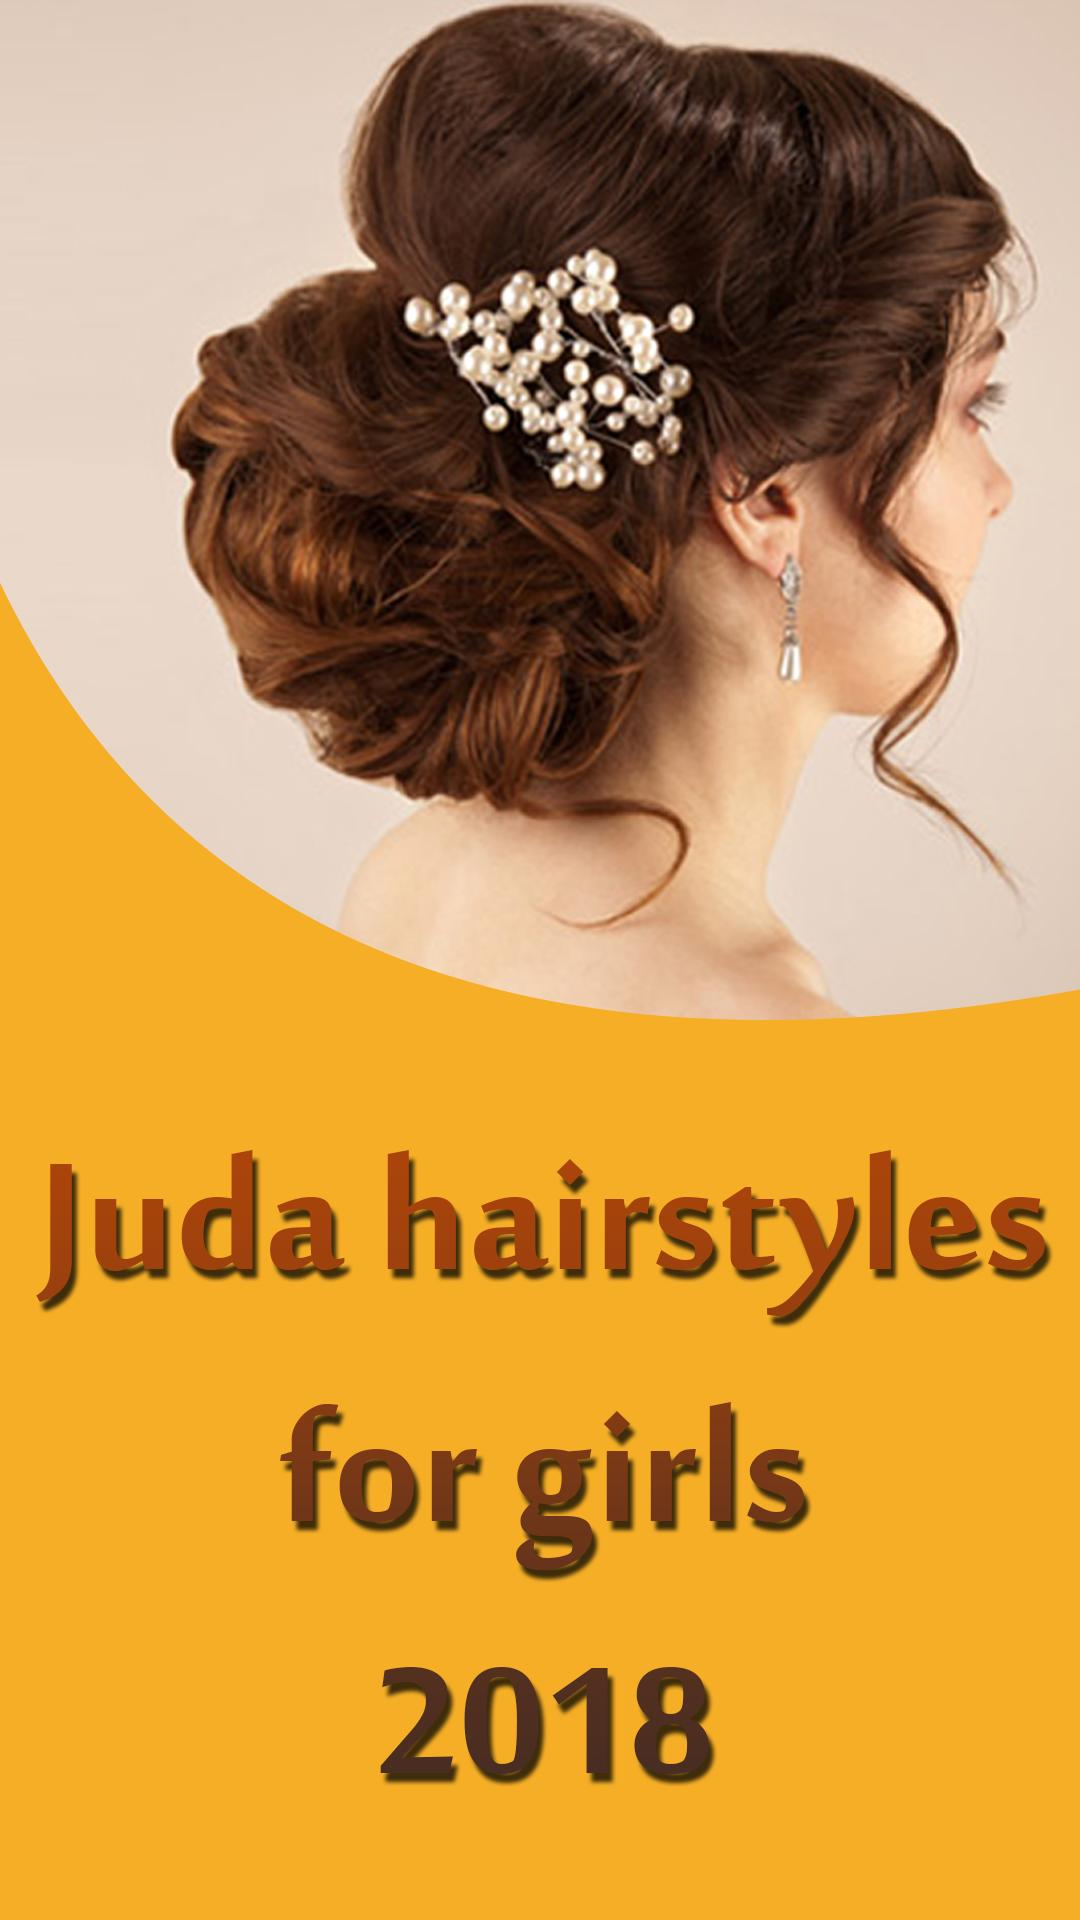 juda hairstyle for girls for android - apk download